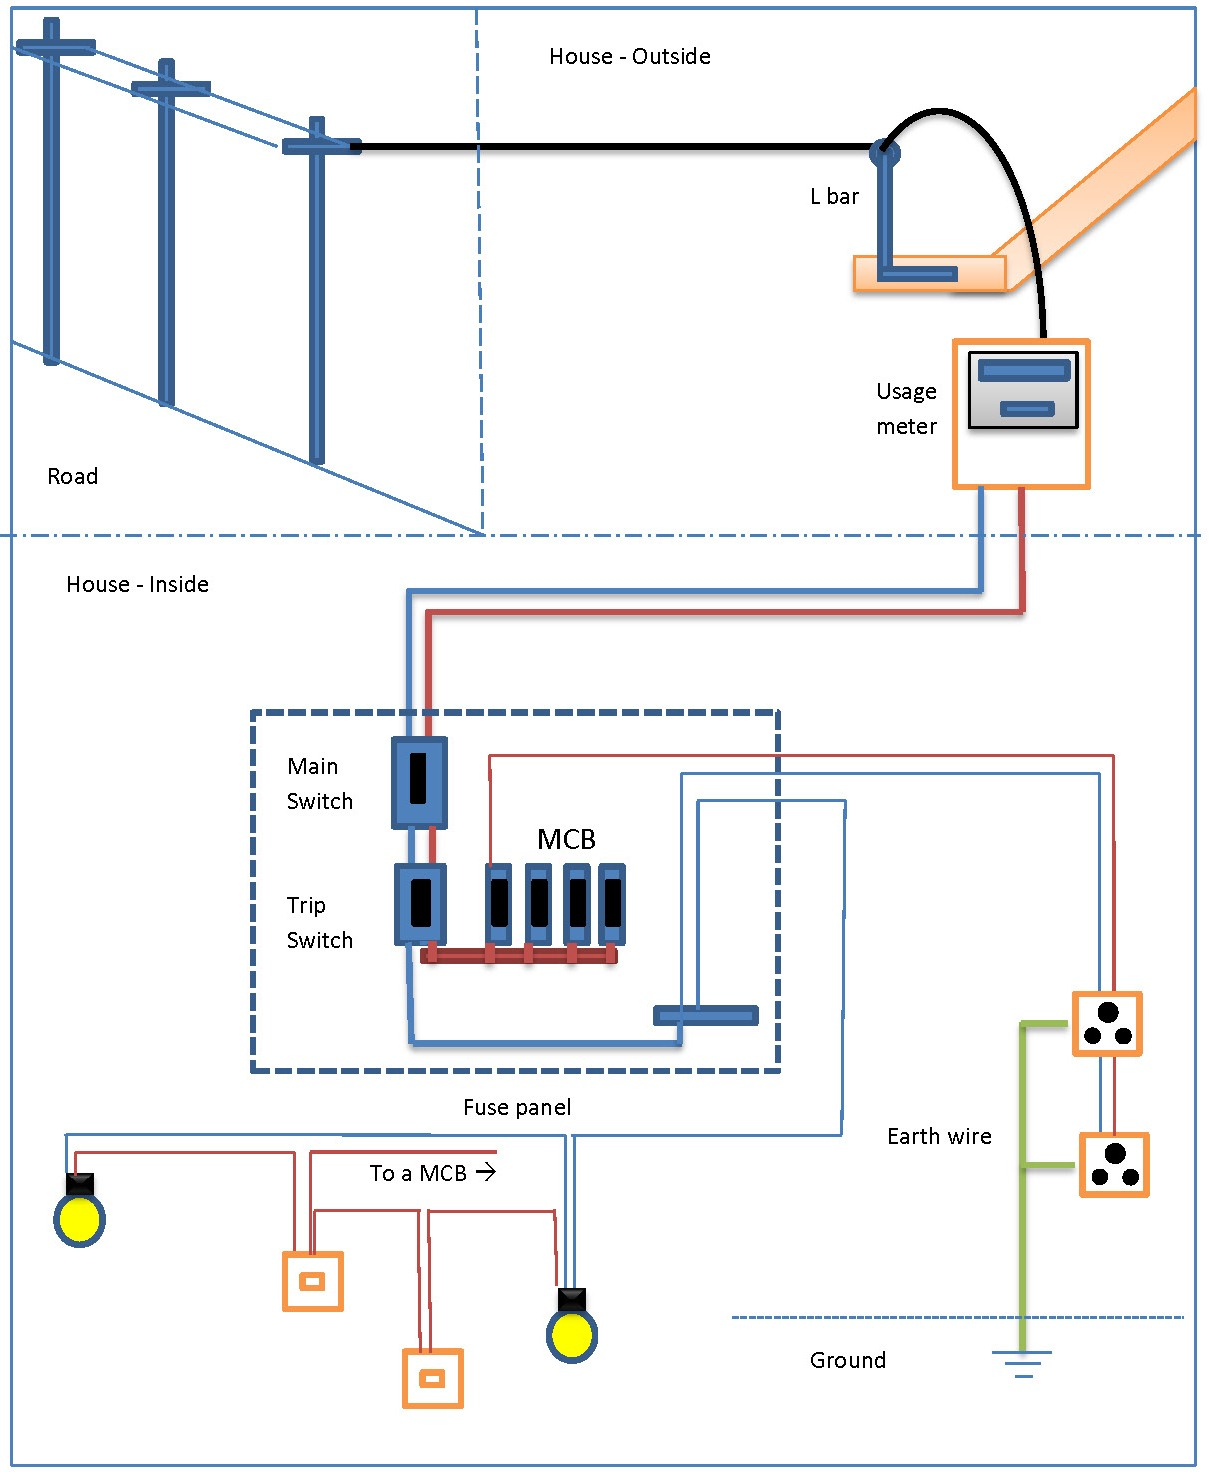 Doc3 senasum's blog house wiring diagram sri lanka house wiring diagrams at bayanpartner.co